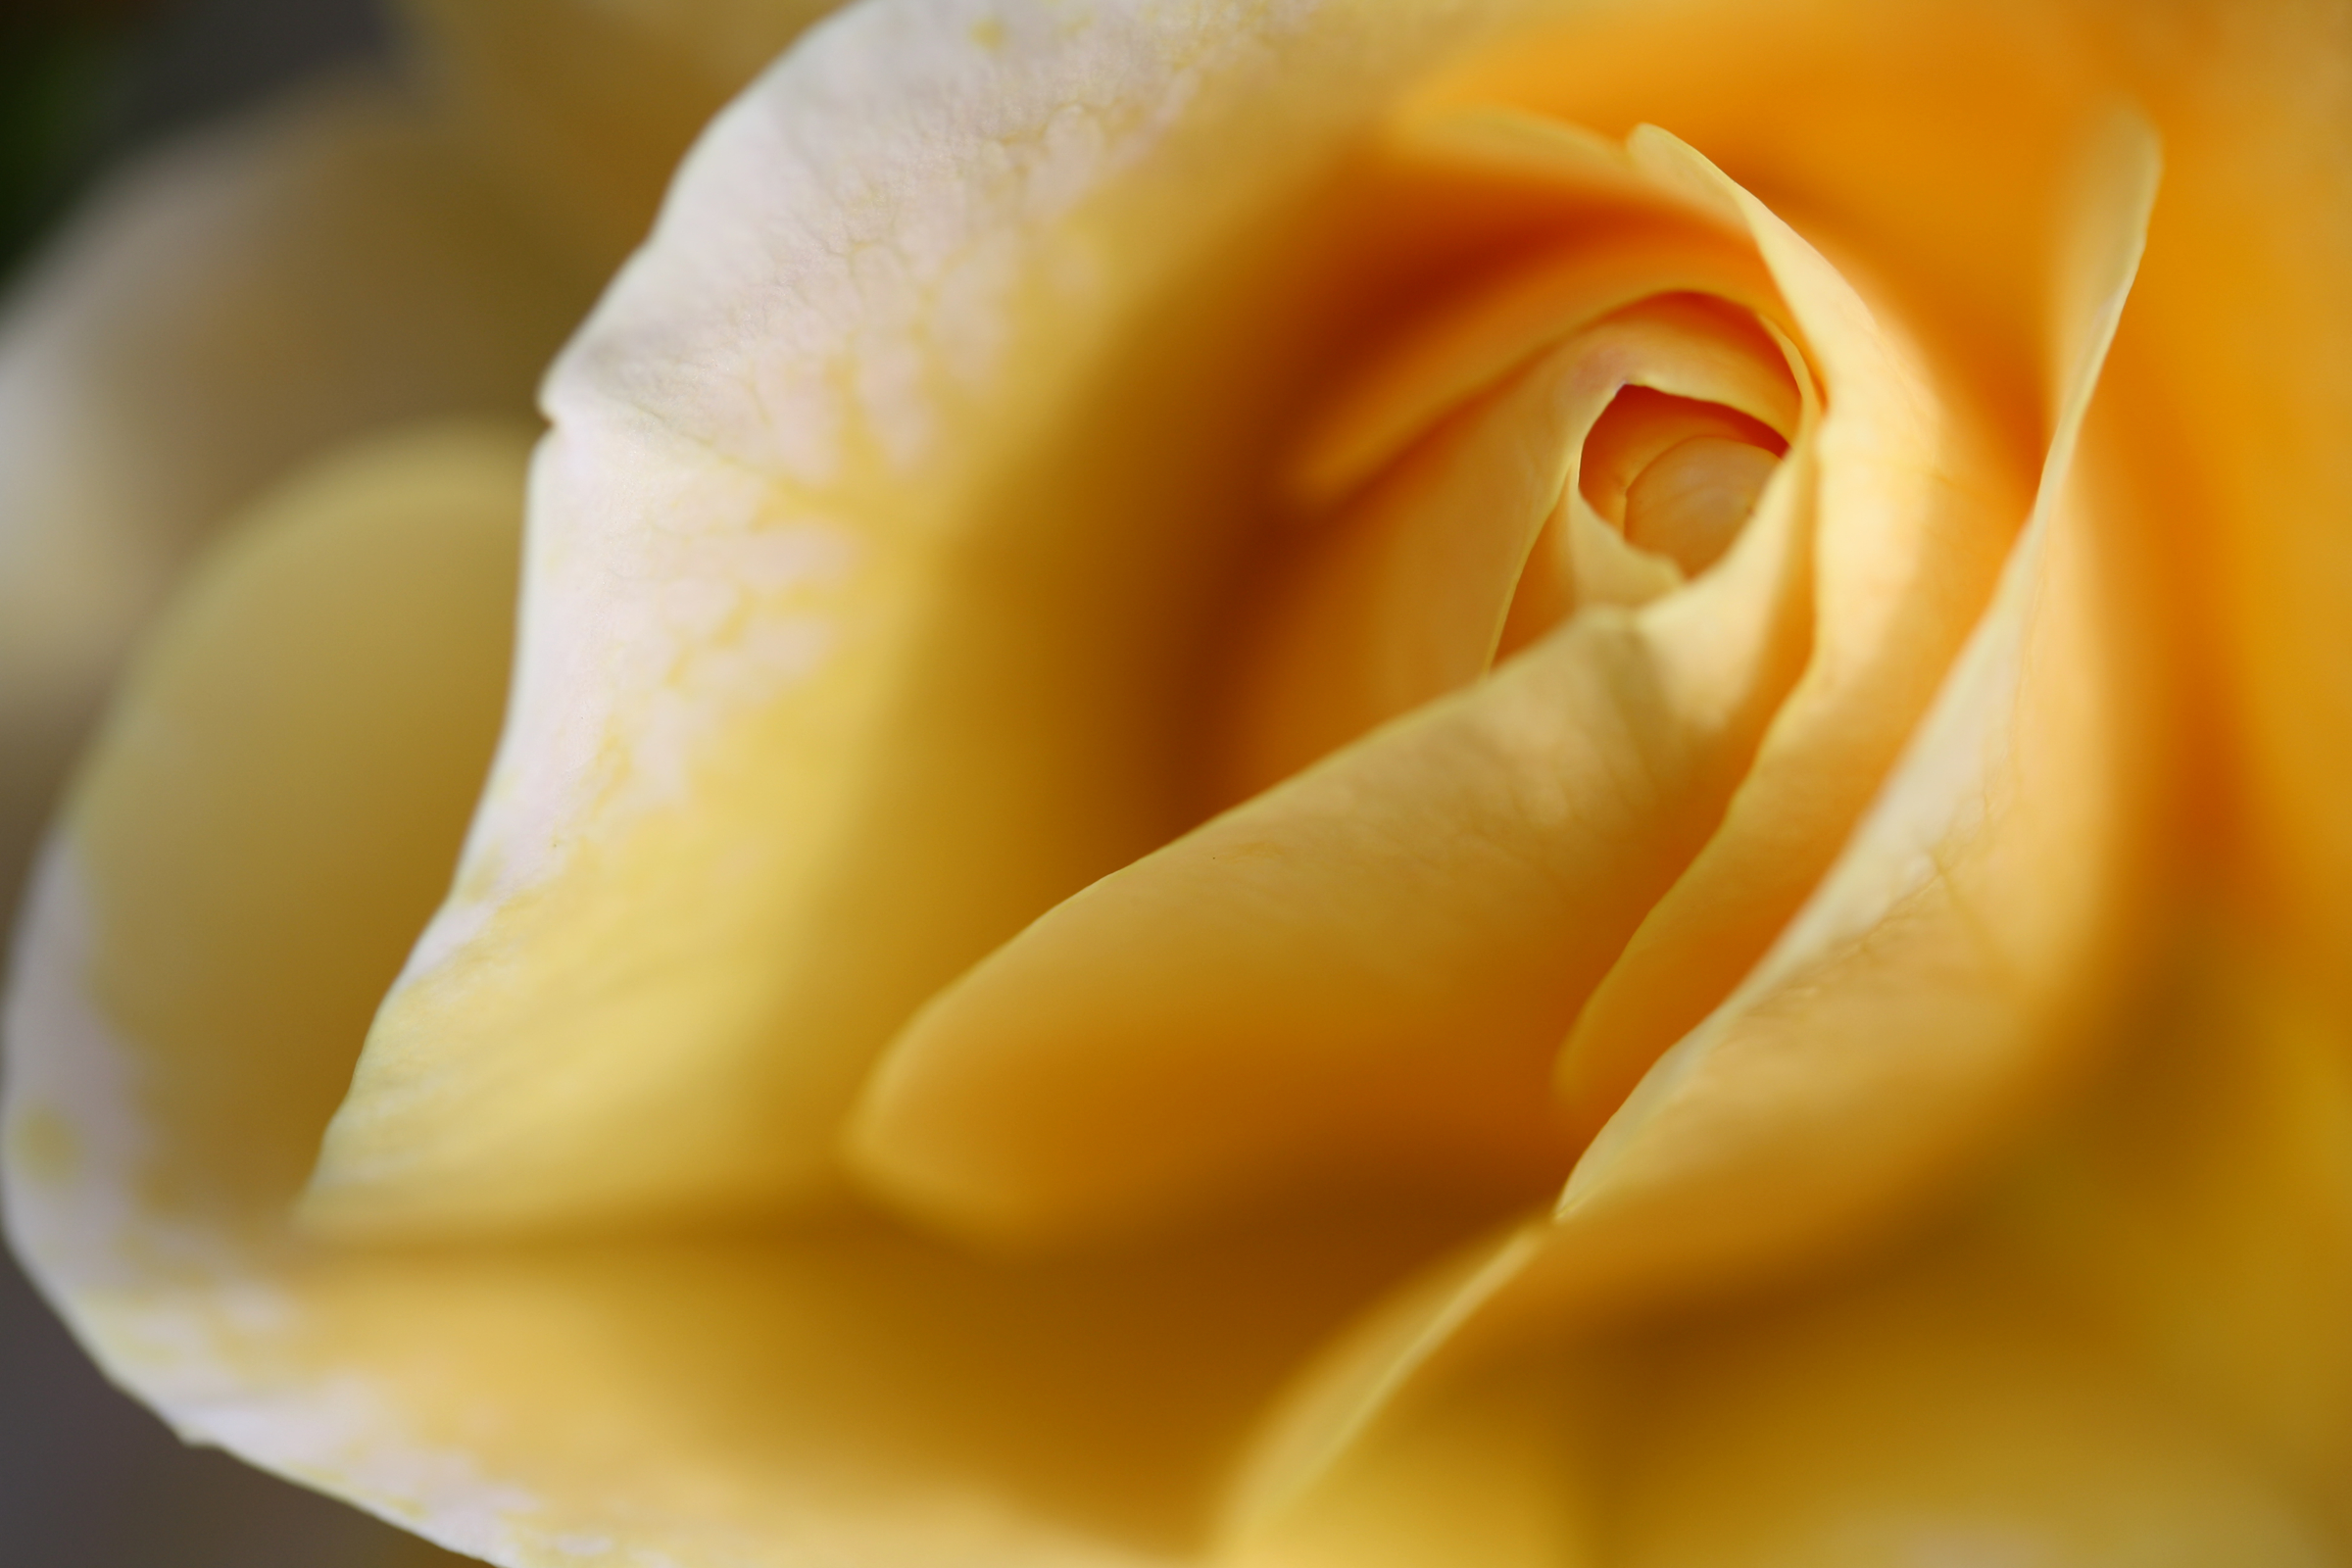 yellow rose Flowers all HD Wallpaper